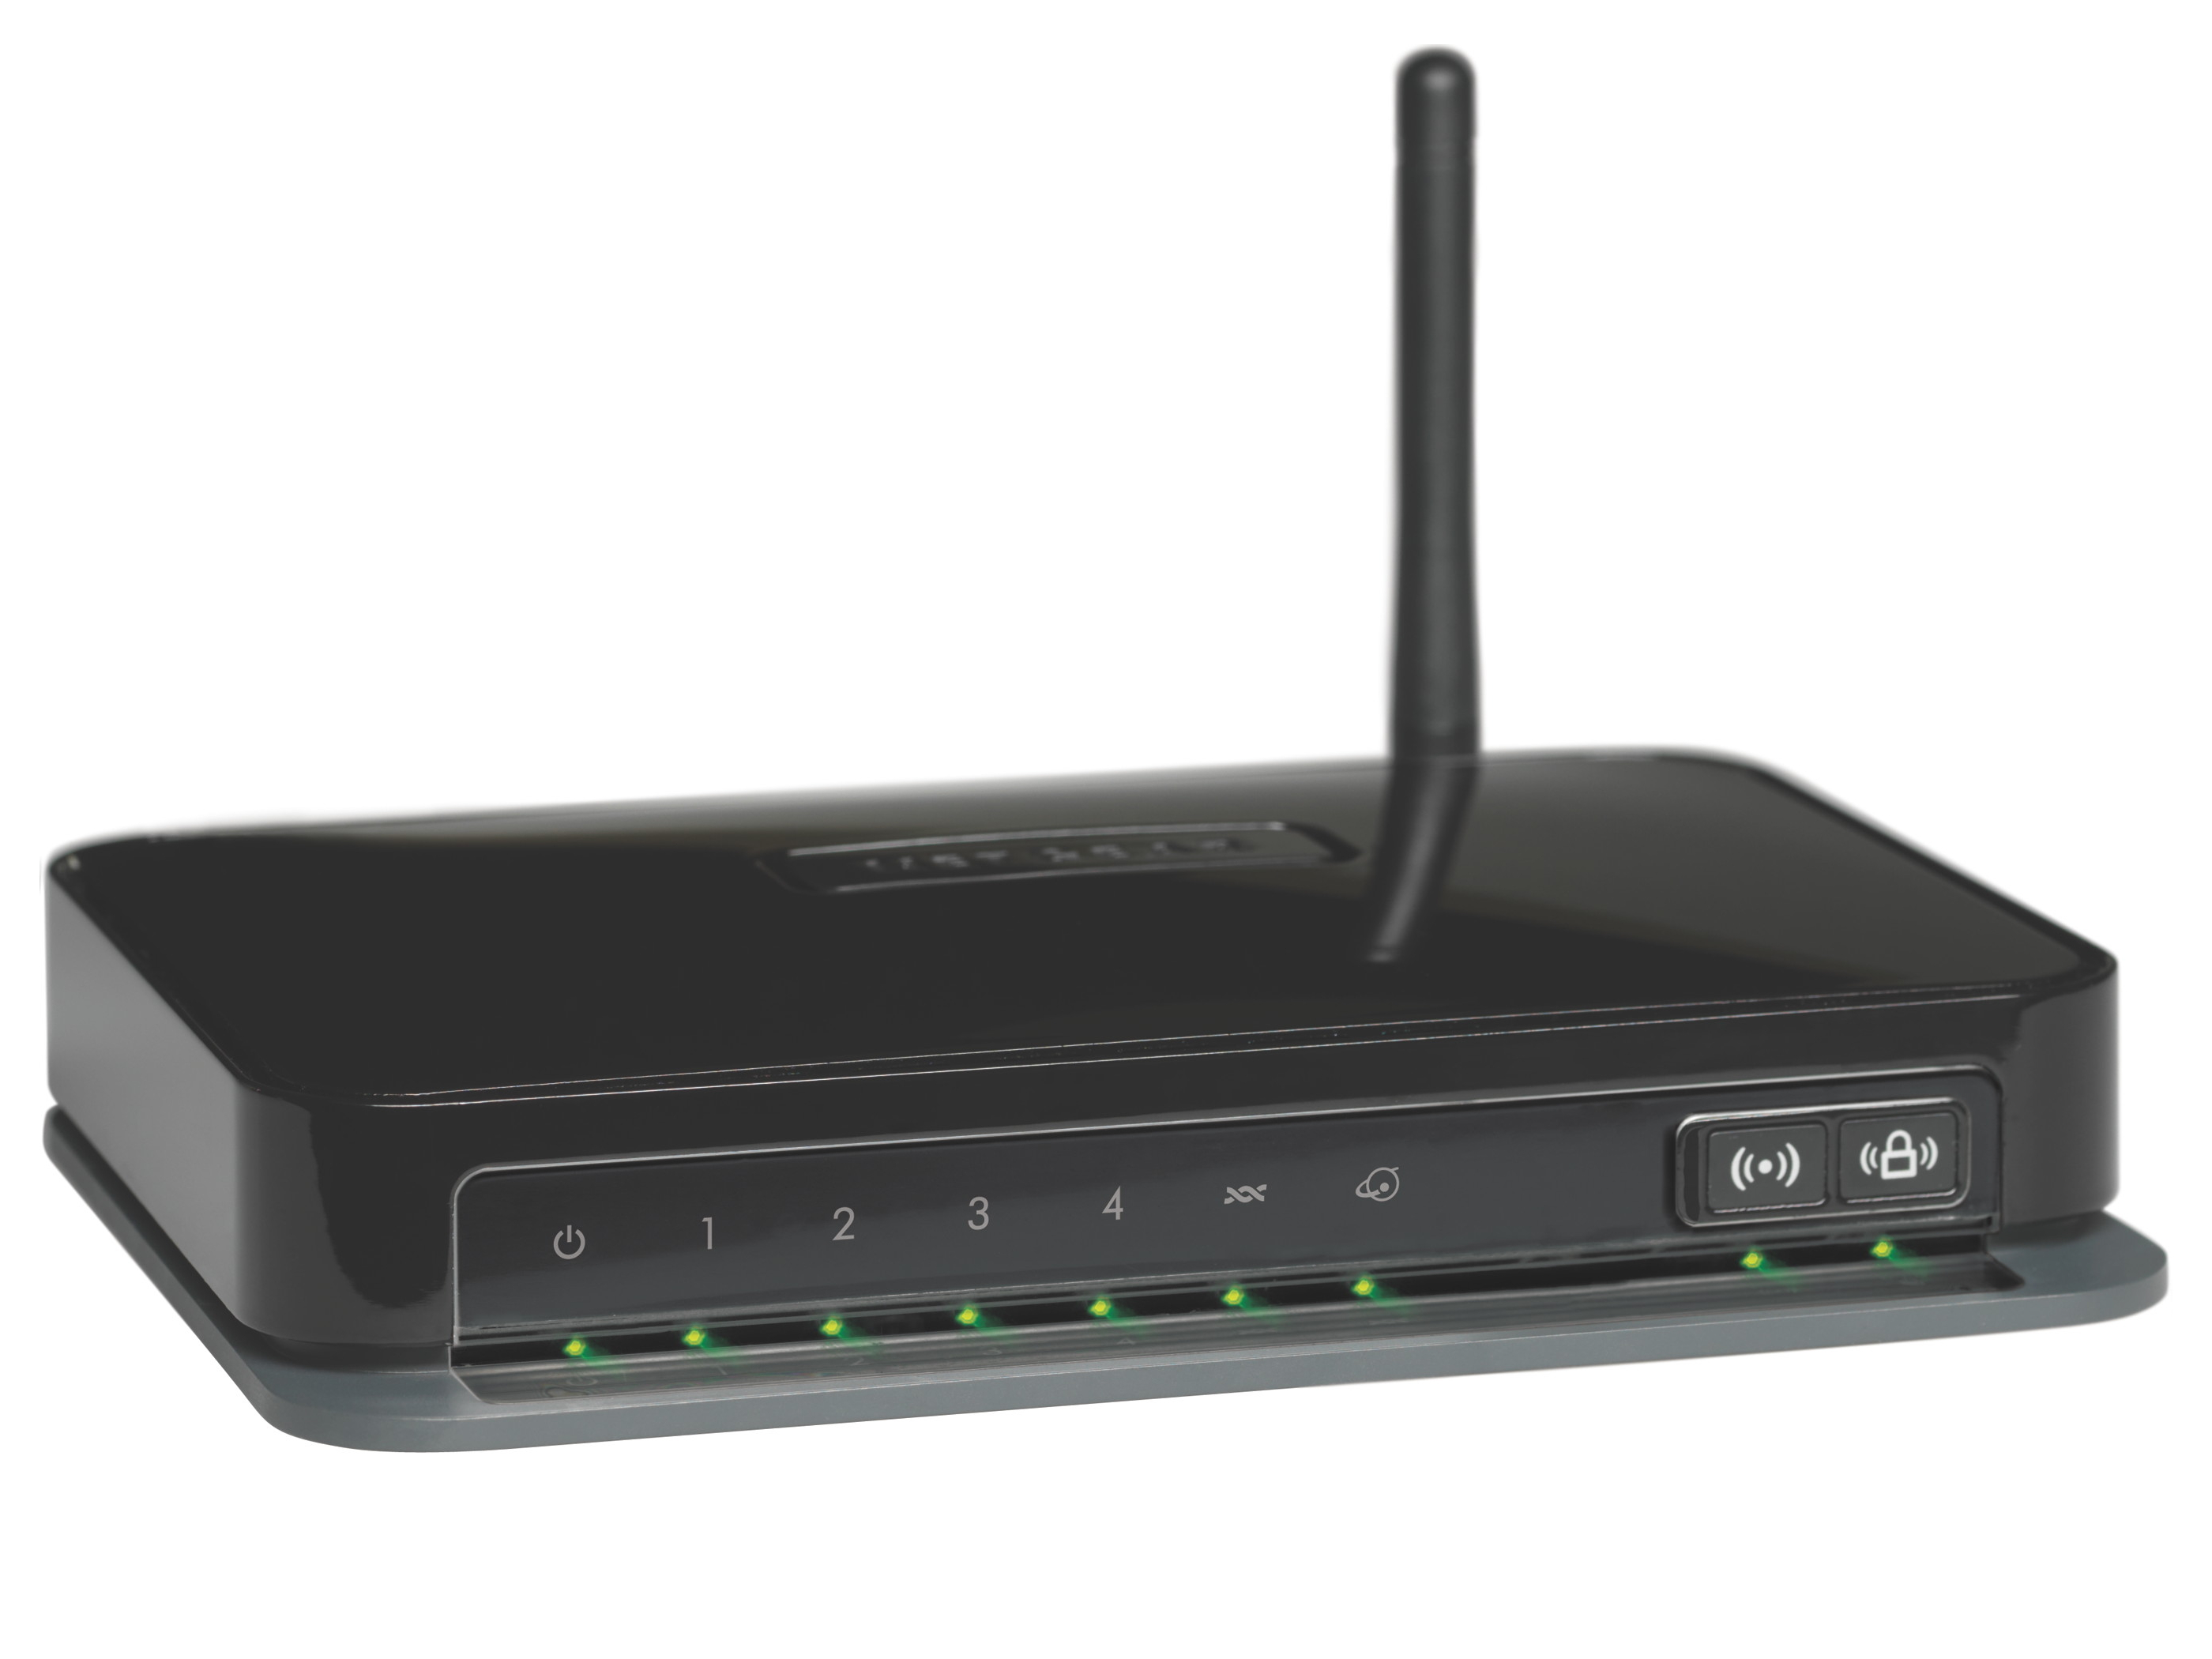 The Best N150 Wireless Router